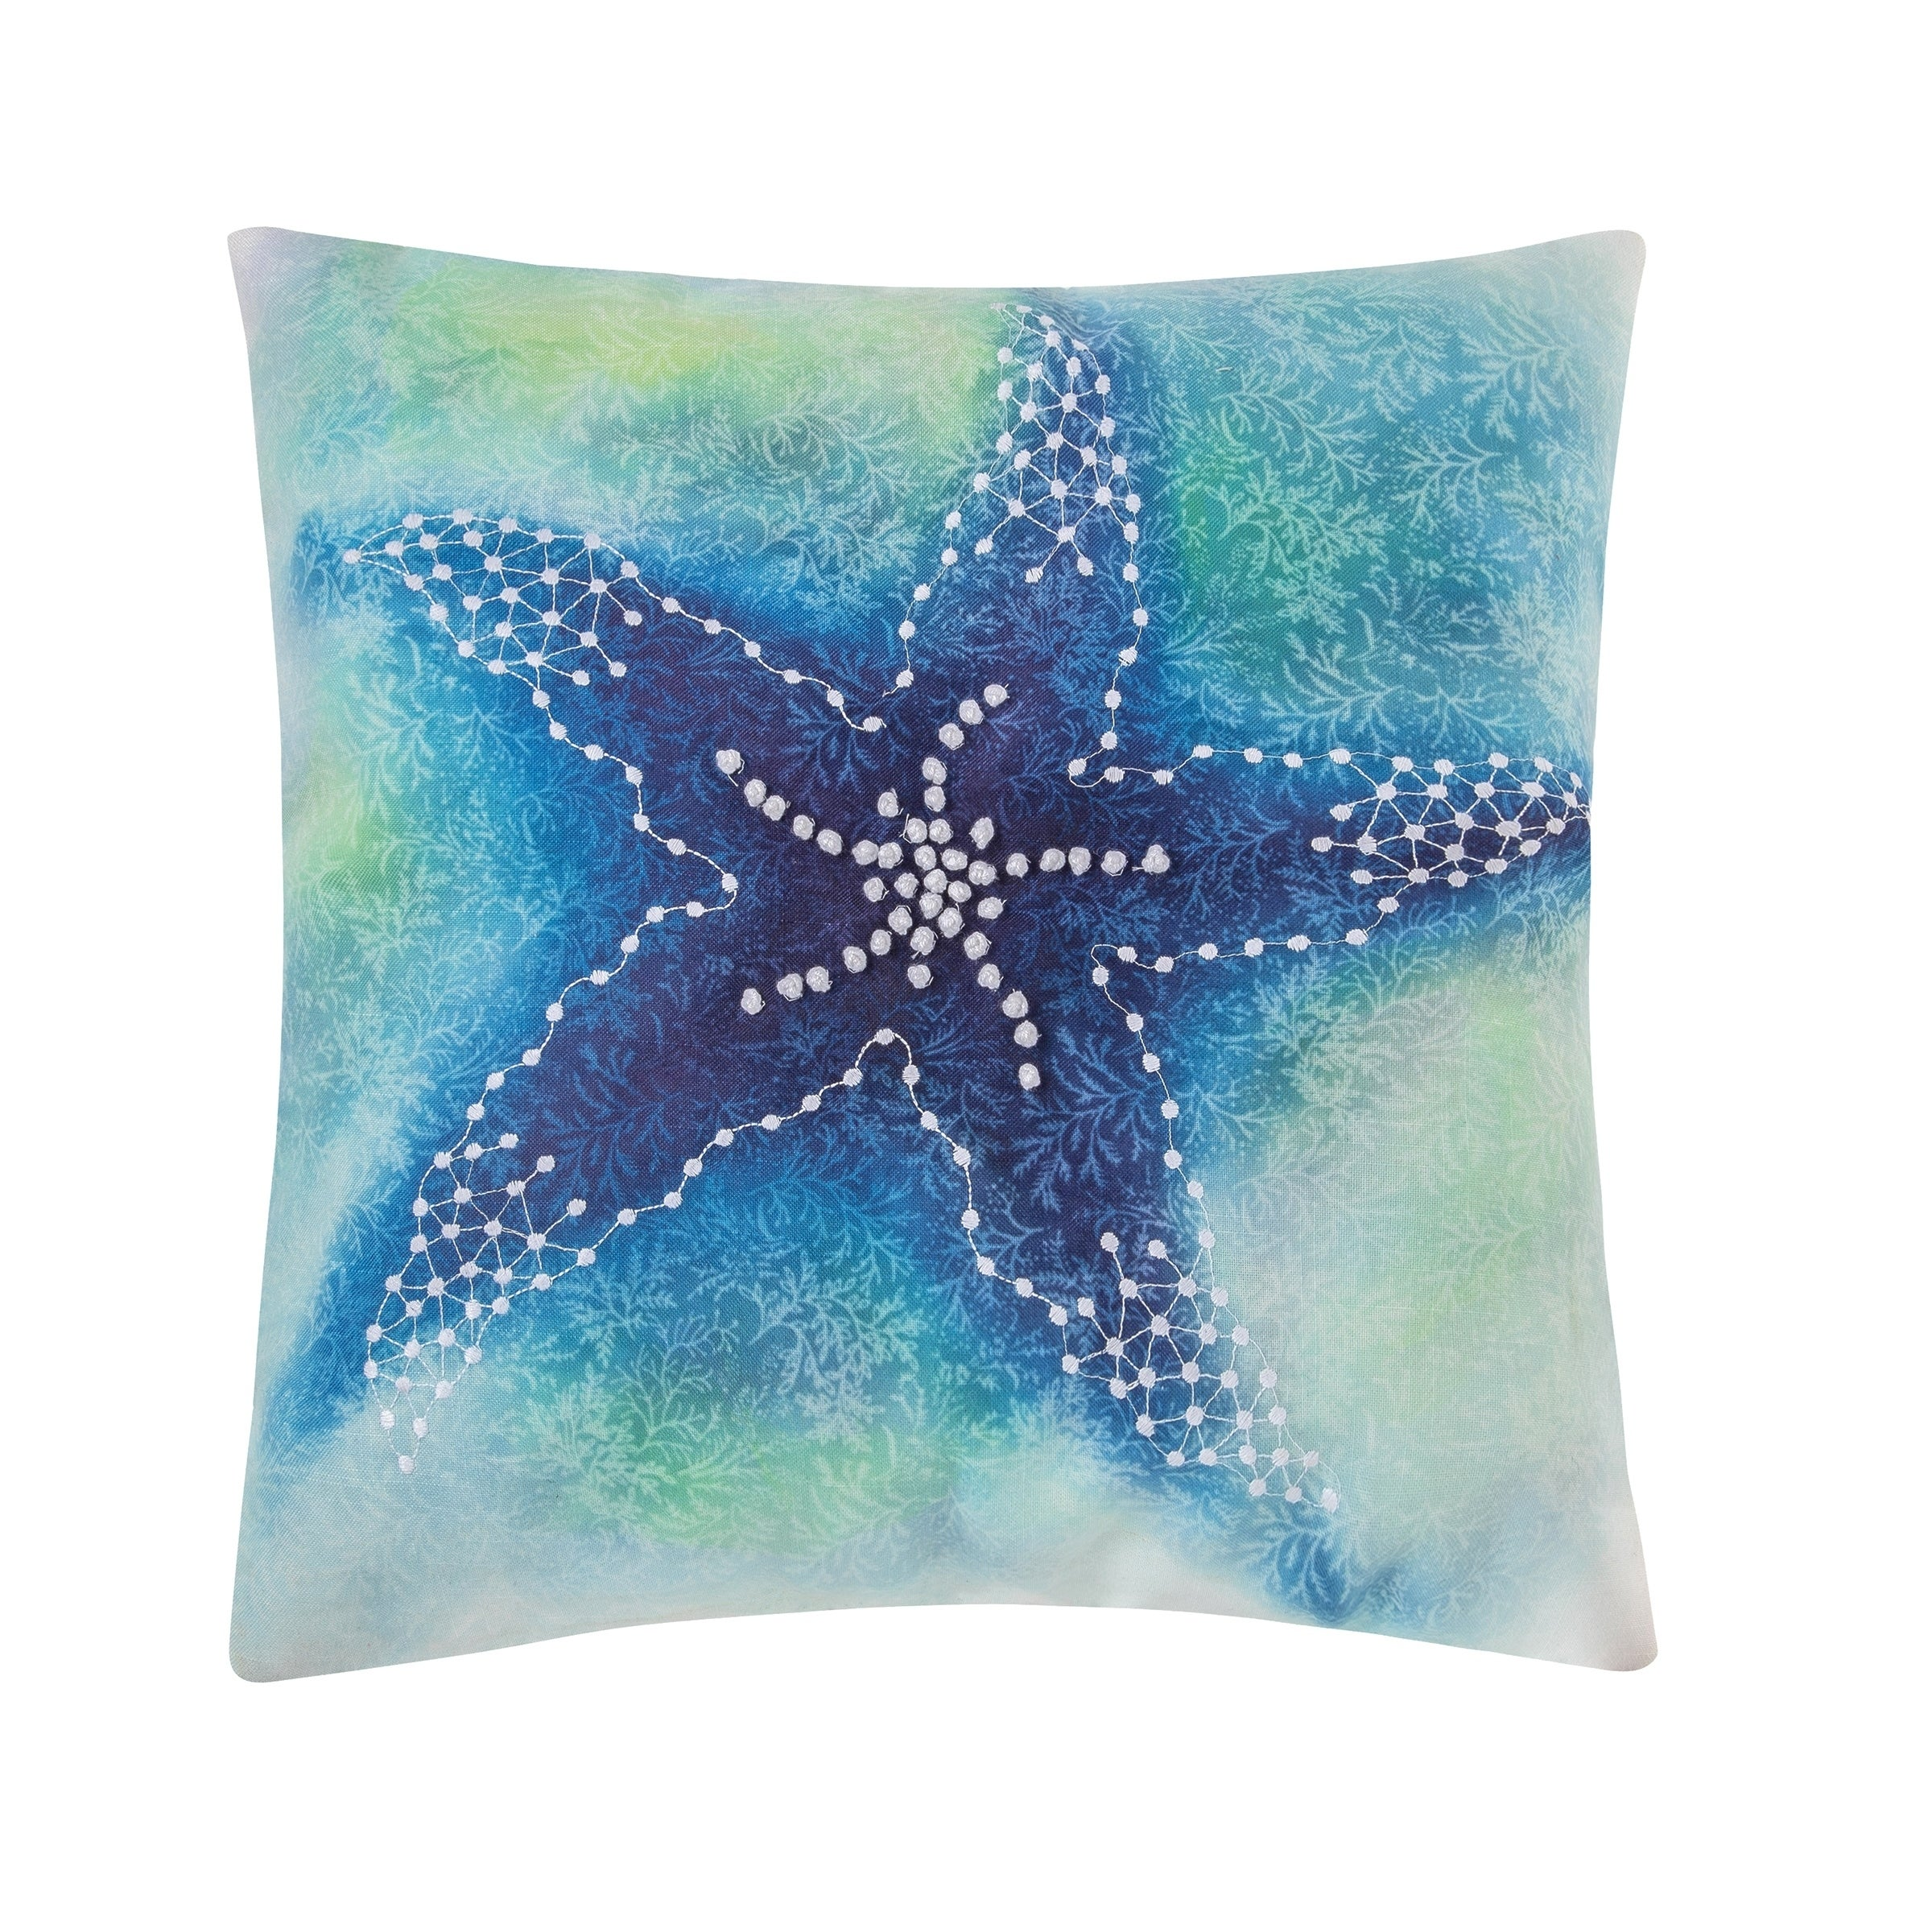 Aqua Starfish 18 x 18 Pillow